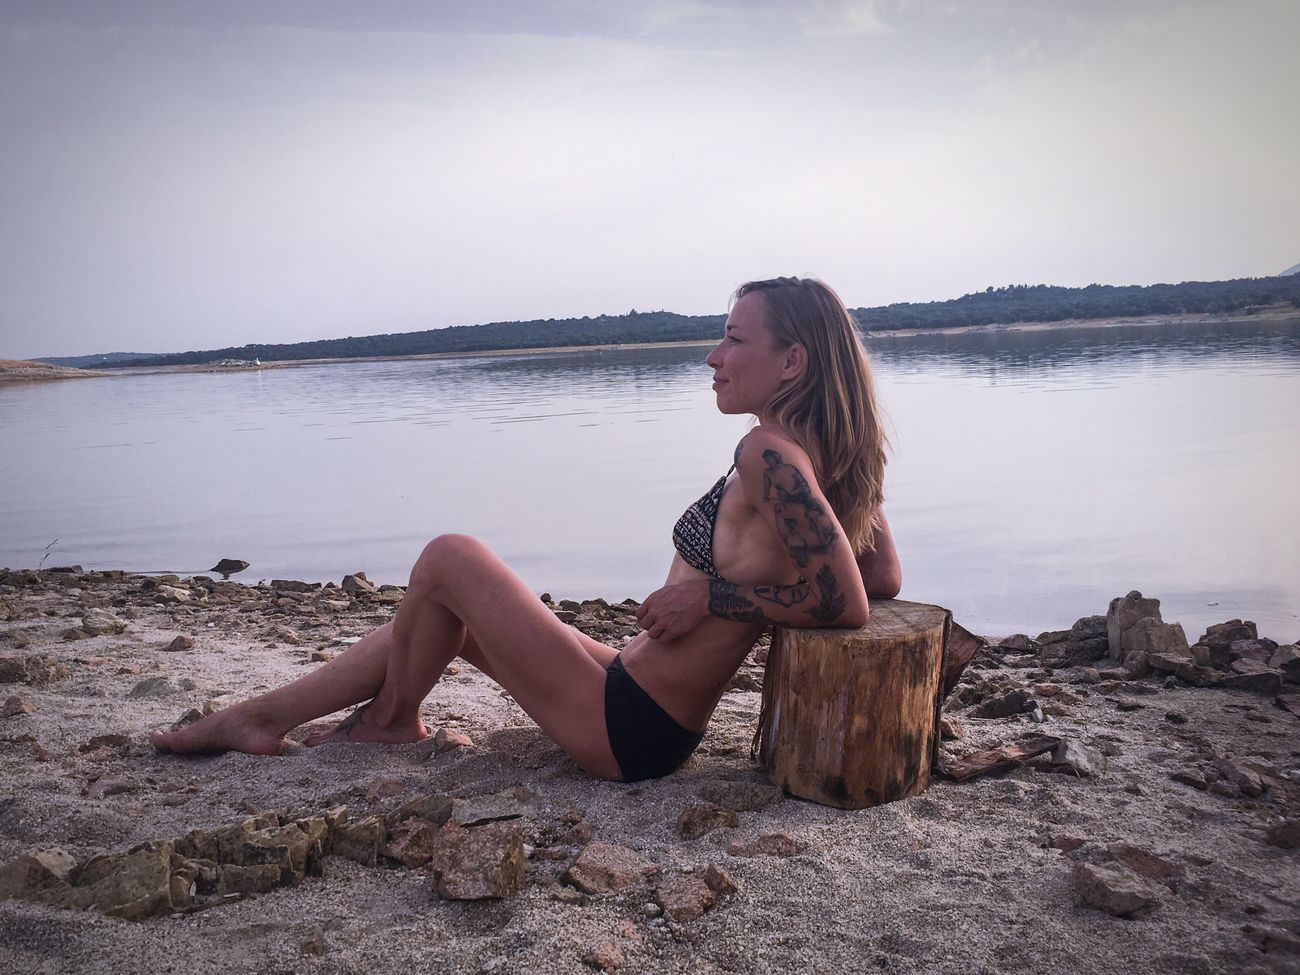 Last summer days😗💨👙 Water Summer People And Places Enjoying Life Myuniquestyle EyeEm Nature Lover Water Reflections Tattoo Woman Lastdayofsummer Relaxing My Favorite Place Having Fun JustMe Twilight Saturday Weekend Tranquility Lifestyles Silhouette Lake Landscape Cityscapes Taking Pictures Nature